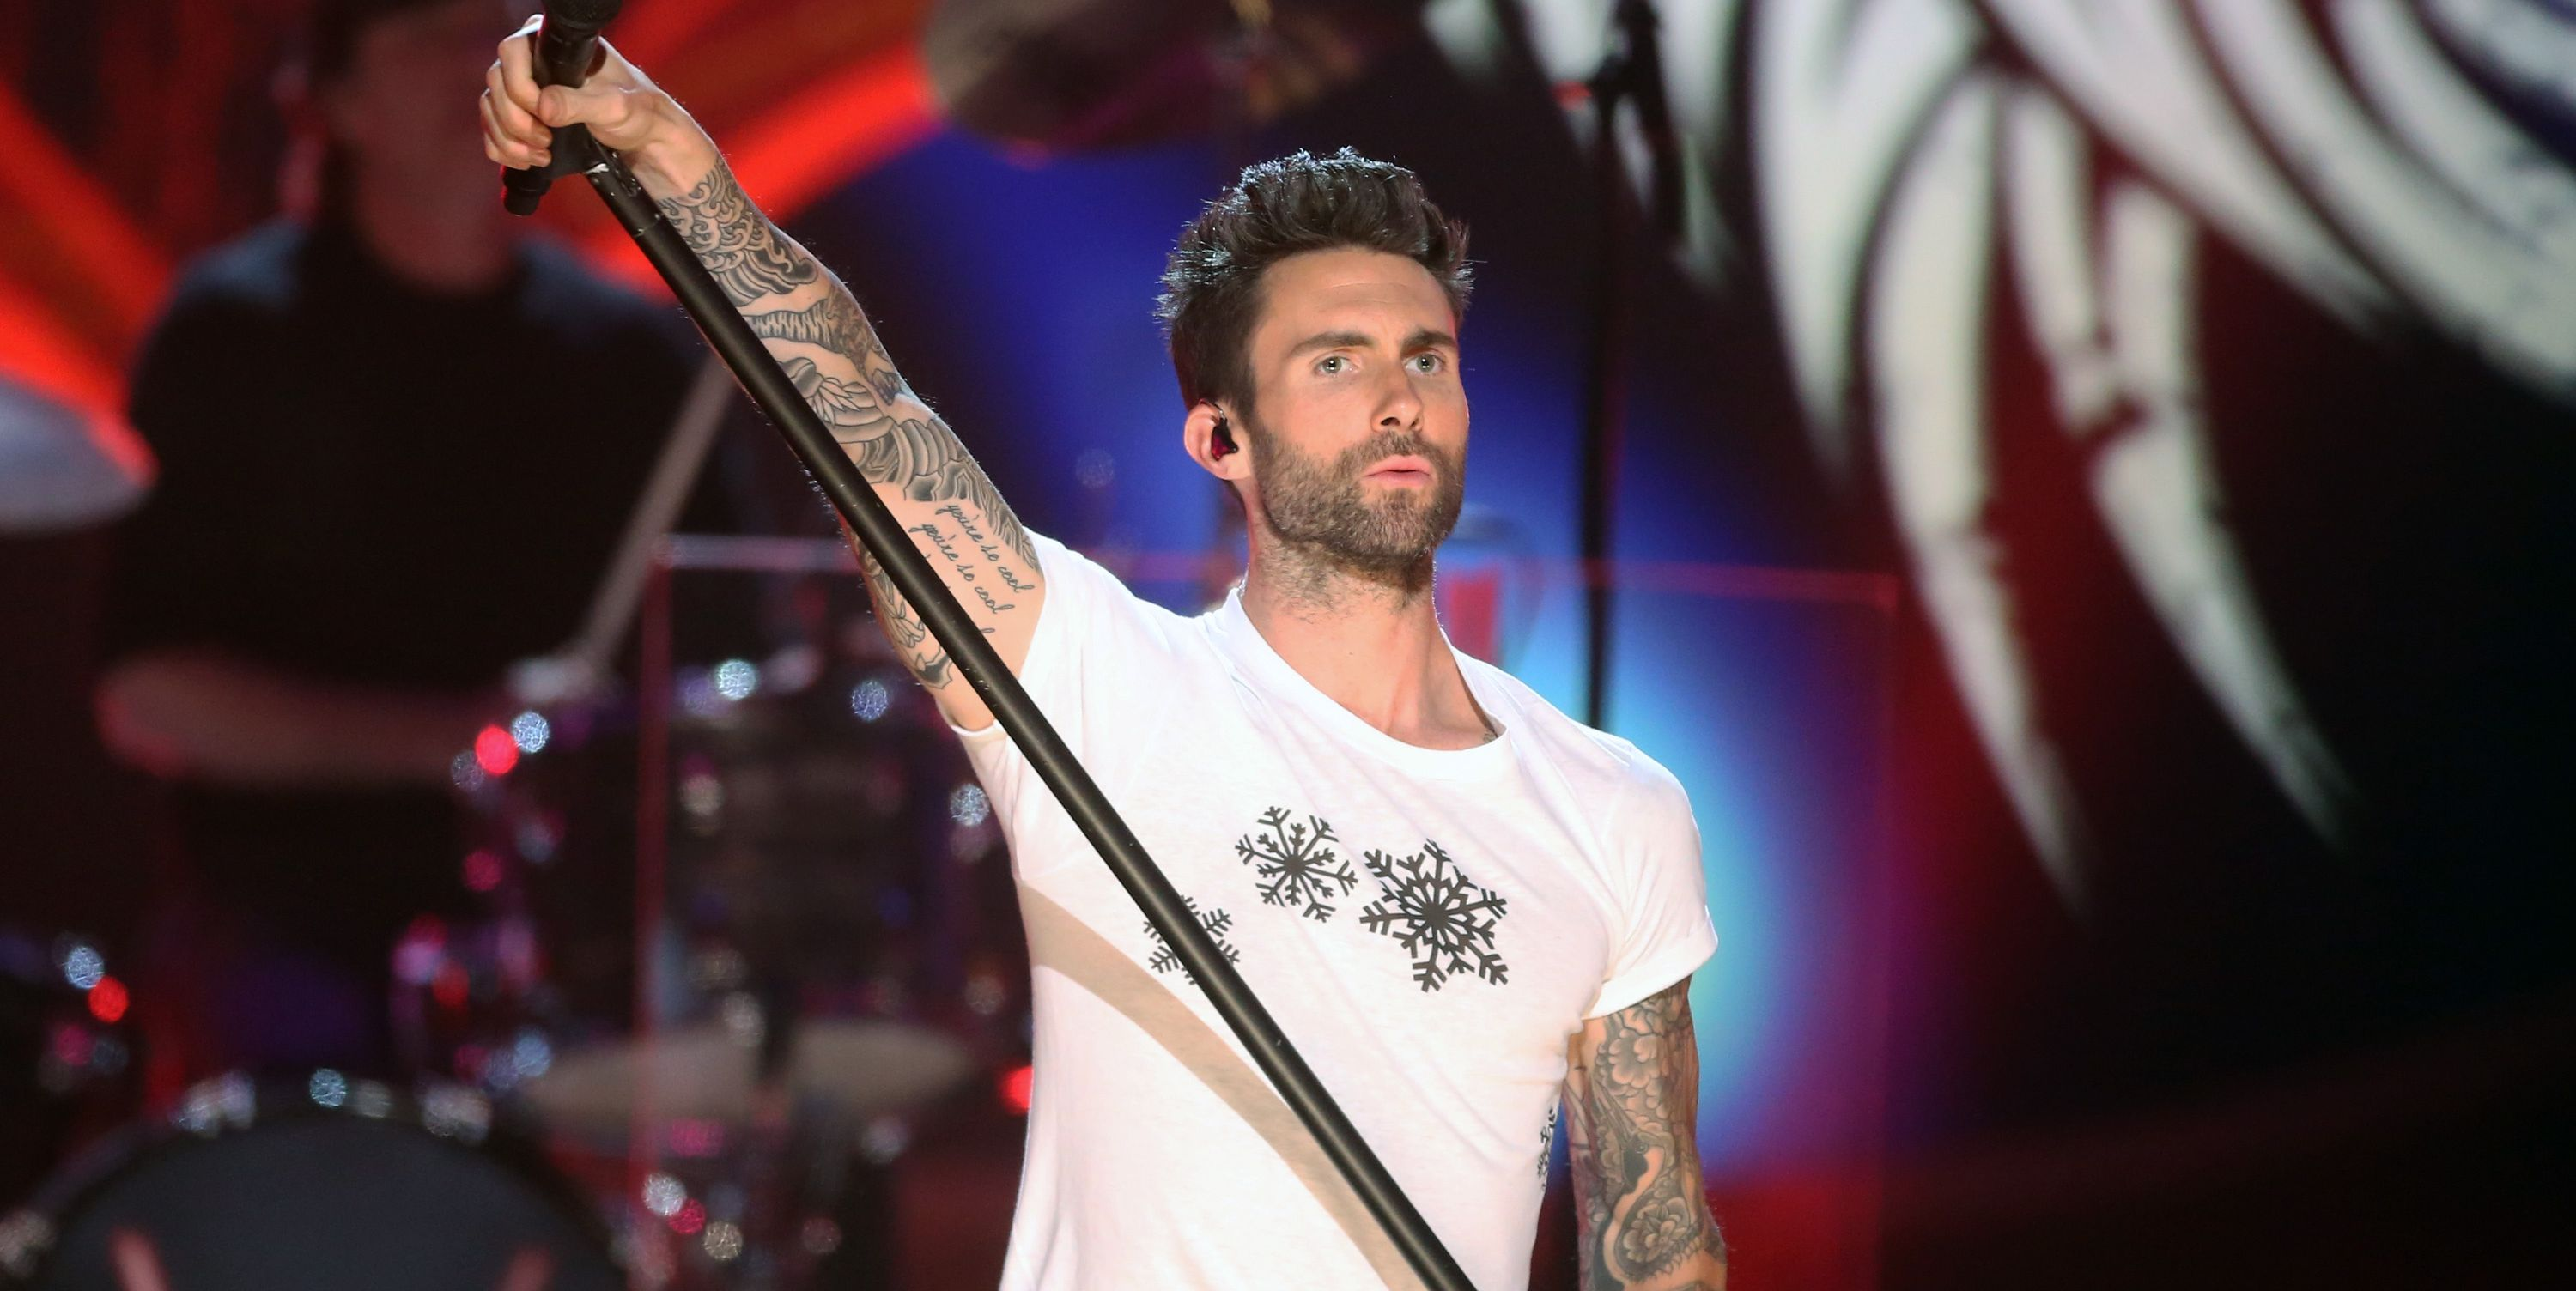 Did You Know There Are Actually 7 Members of Maroon 5?